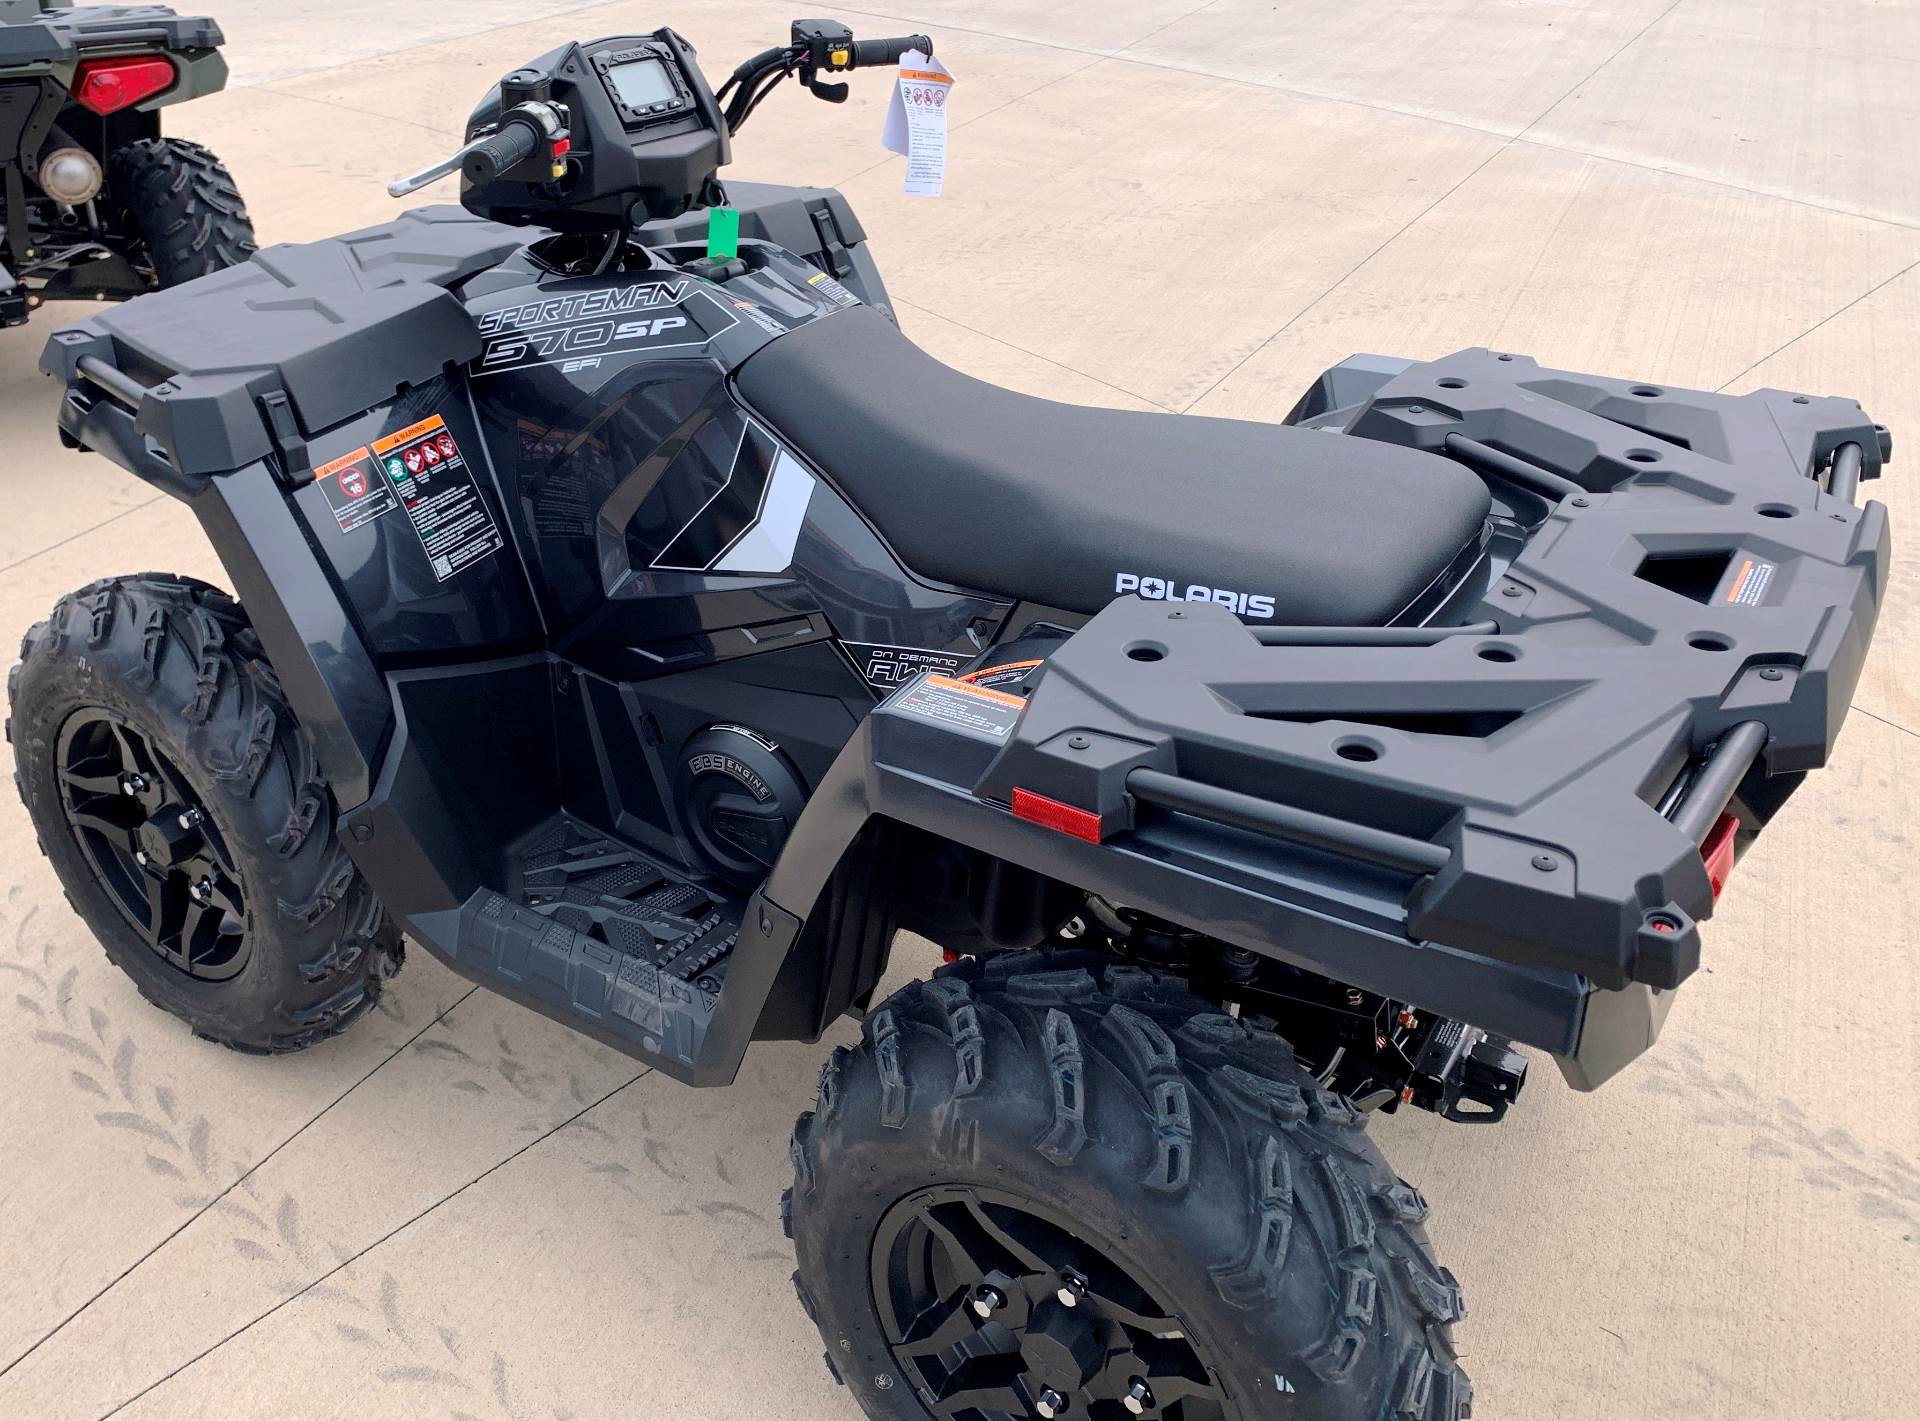 2019 Polaris Sportsman 570 SP in Ottumwa, Iowa - Photo 5